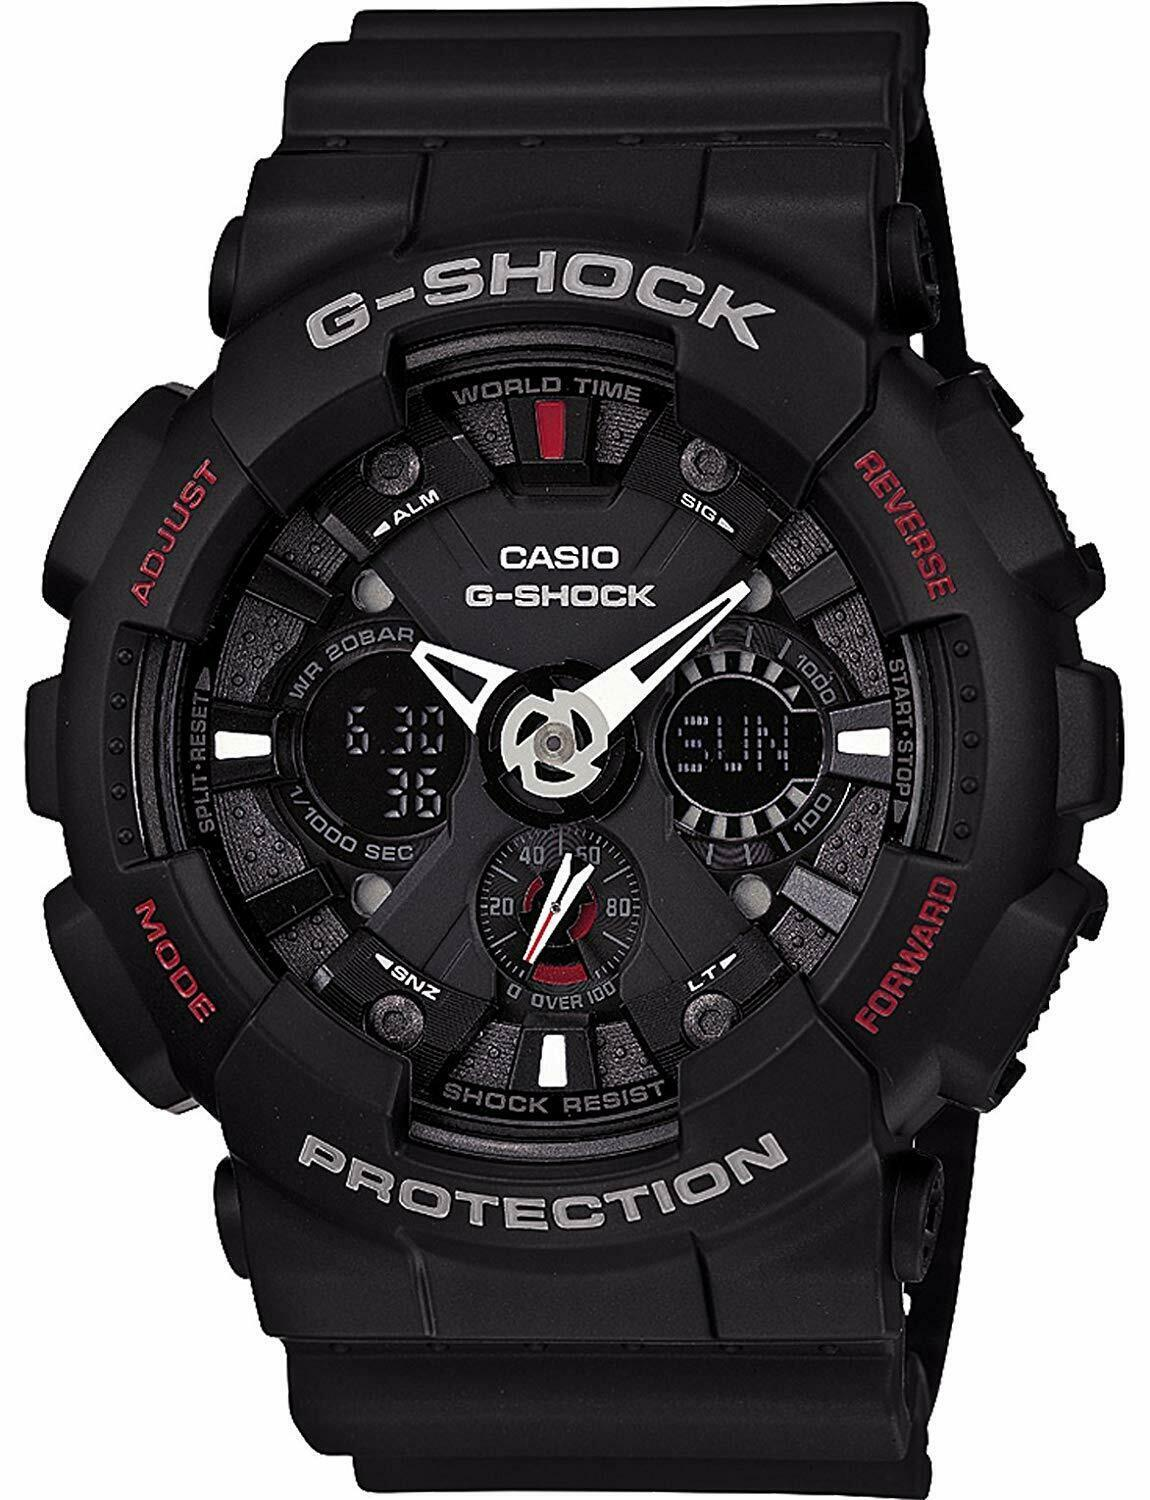 Primary image for Casio G-Shock Analog-Digital Black Dial Men's Watch - GA-120-1ADR (G346)